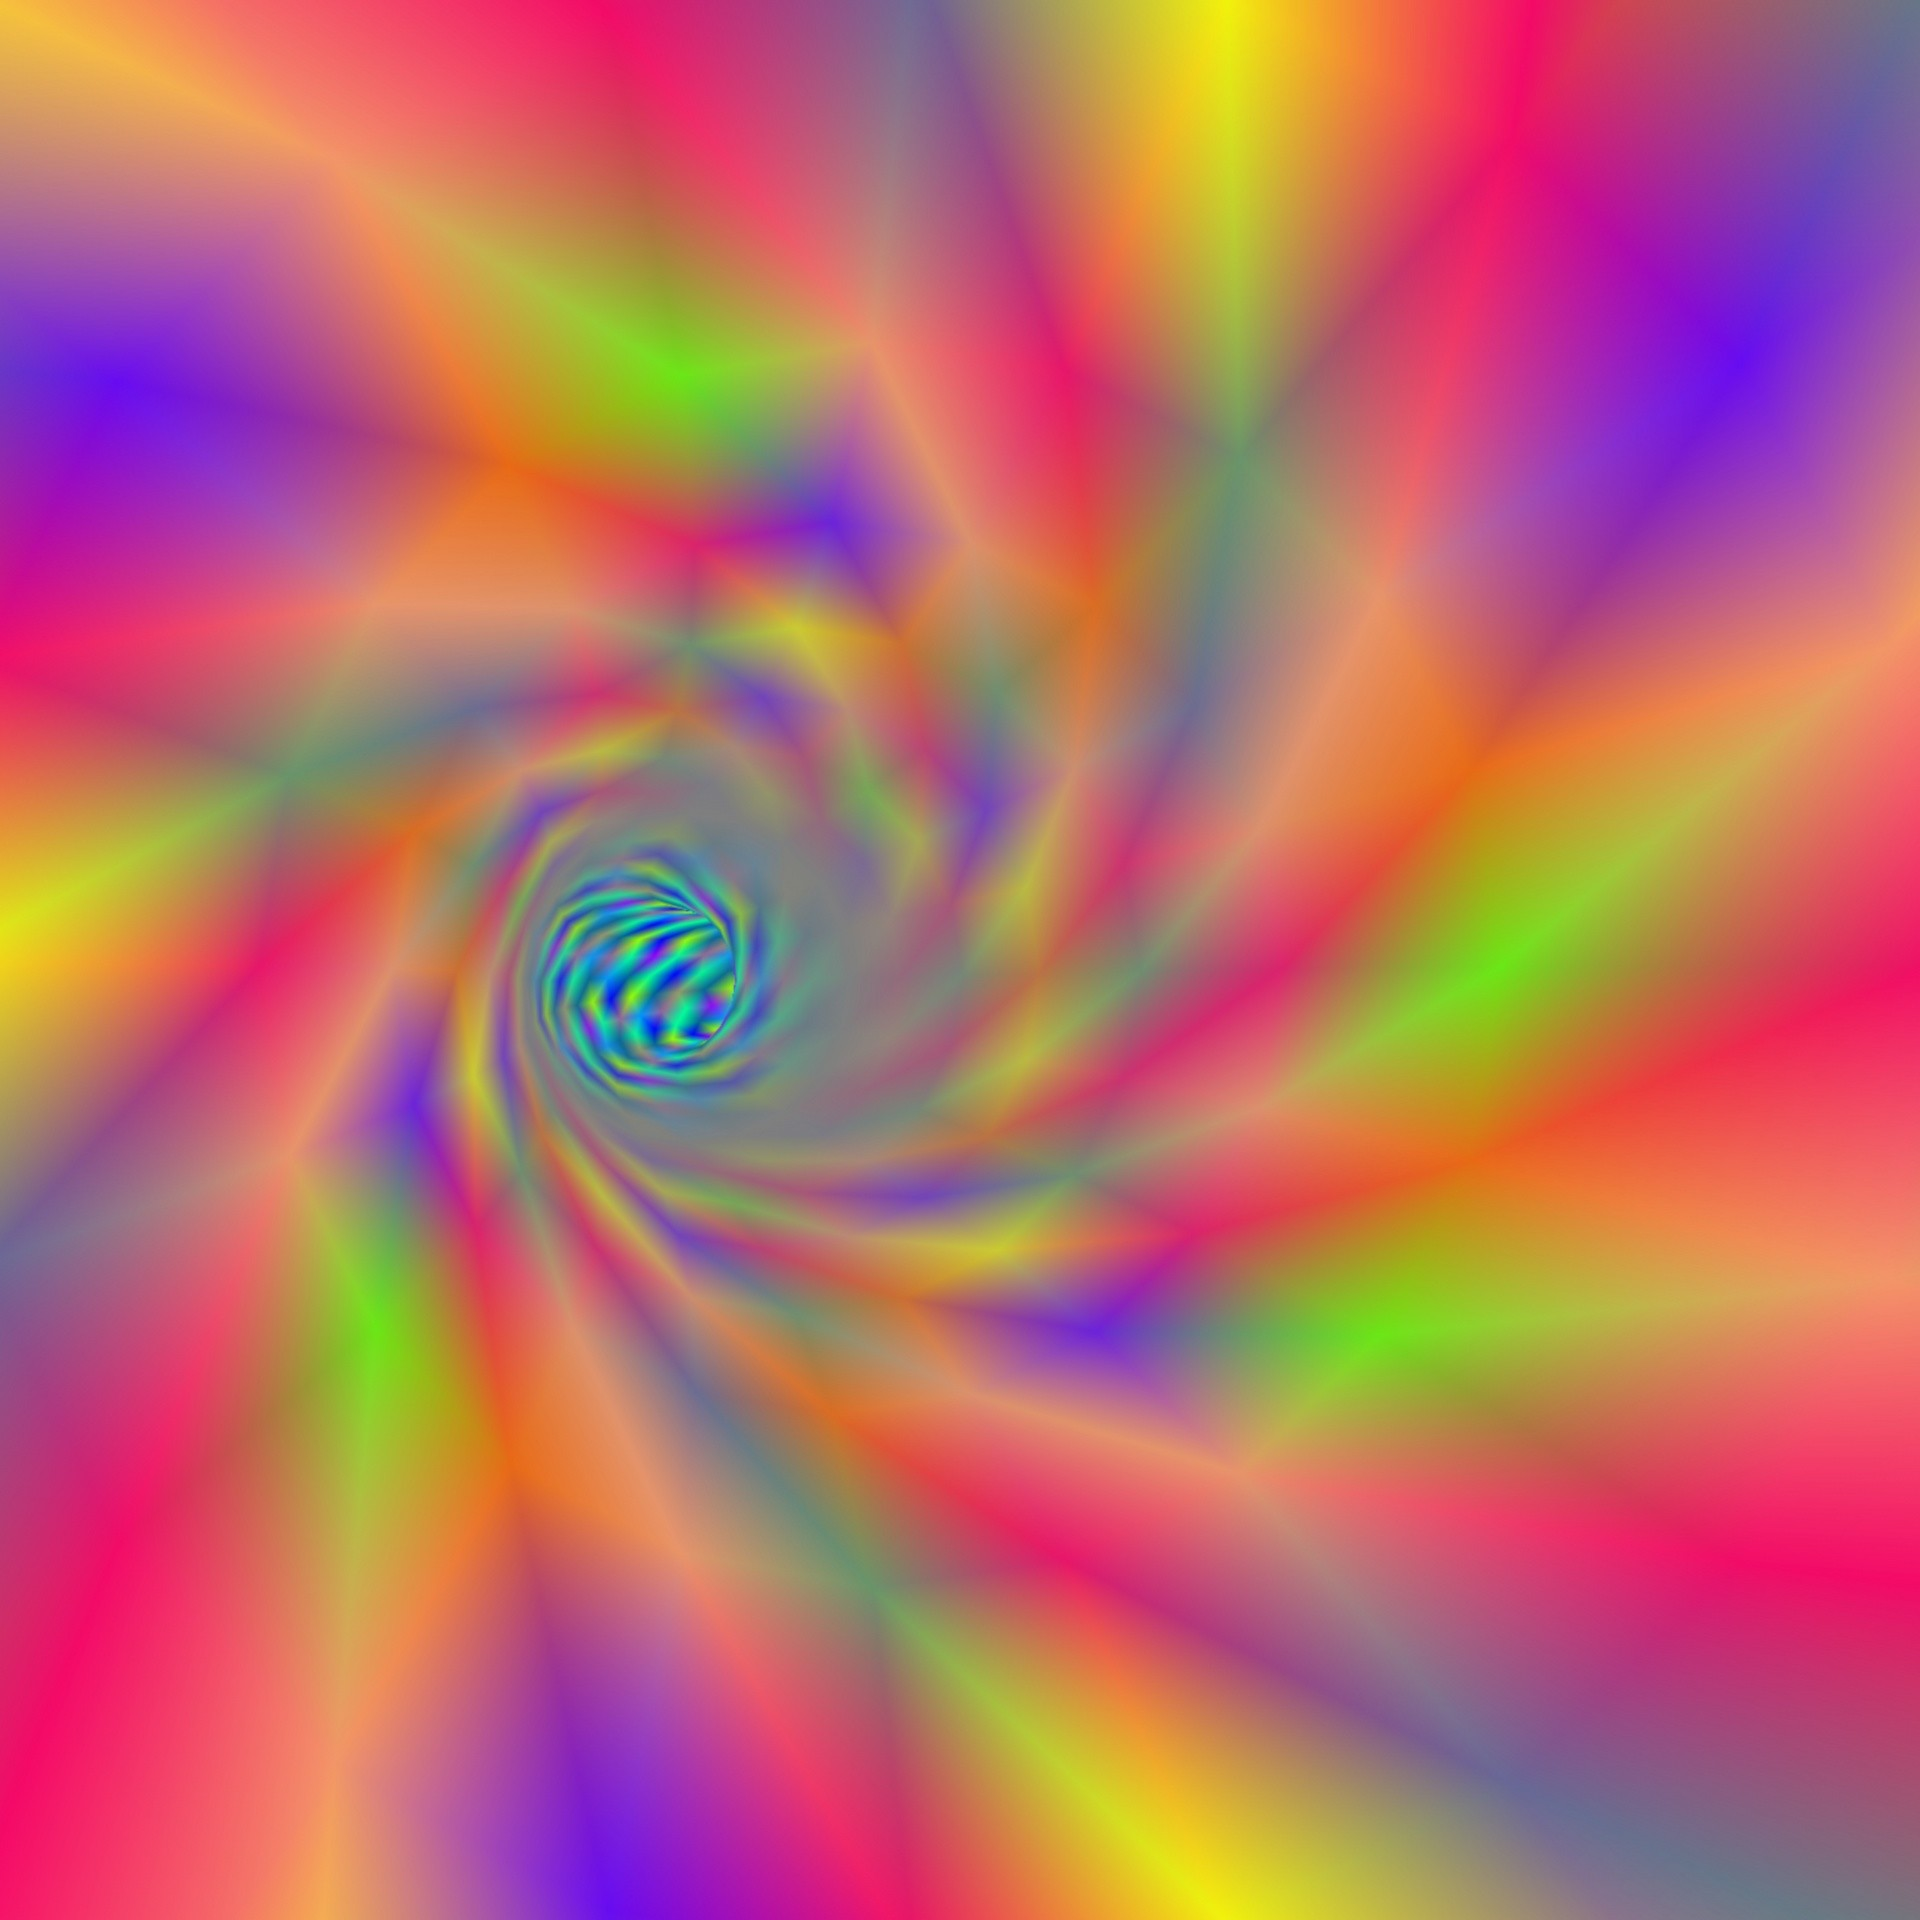 1920x1920 wallpaper,background,rainbow,colors,tunnel,vortex,art,abstract,